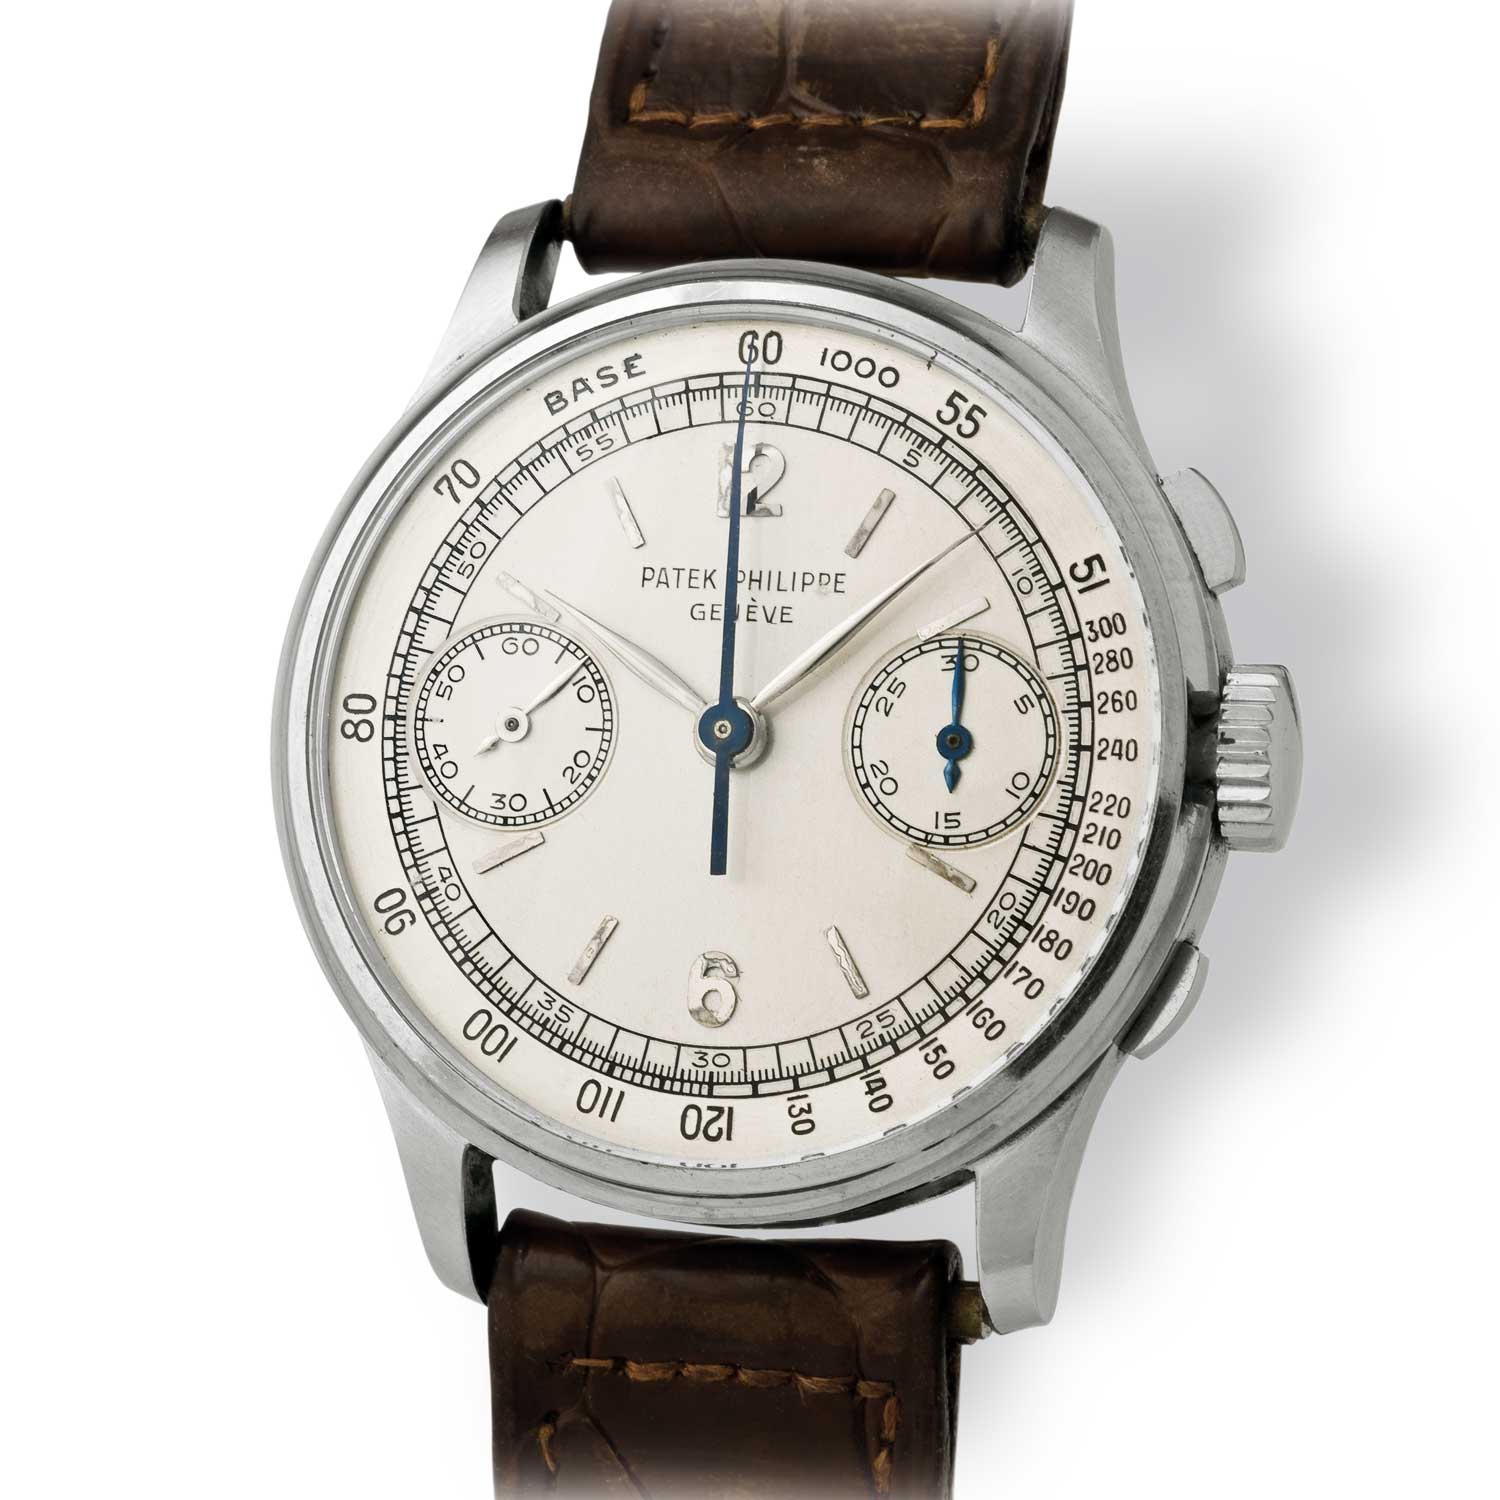 Patek Philippe ref. 130 steel chronograph with Arabic numerals (Image: John Goldberger)